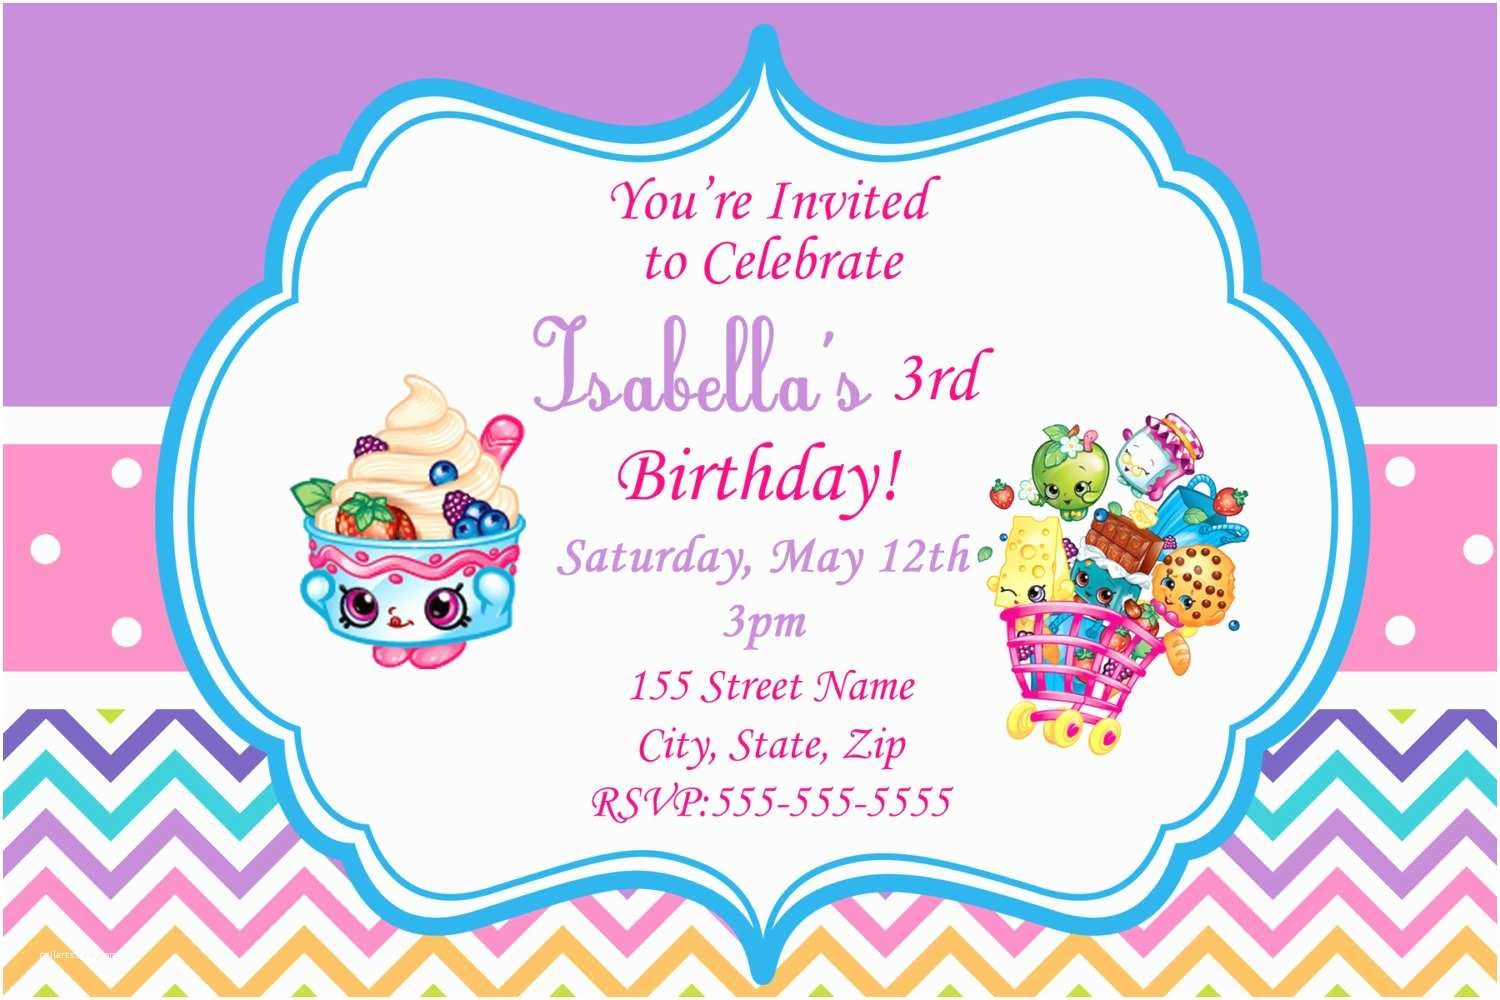 Shopkins Birthday Party Invitations Shopkins Invitations Shopkins Birthday Party by